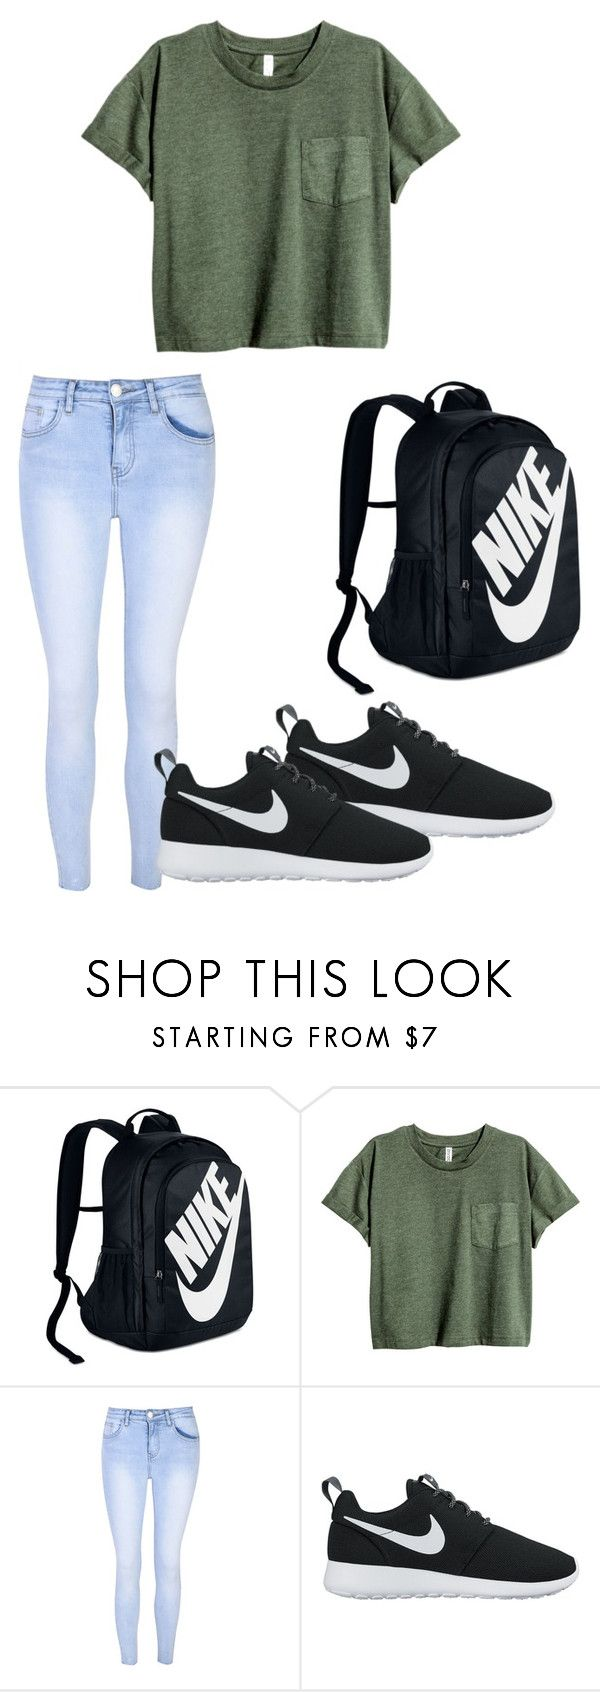 """School outfit"" by svdalen on Polyvore featuring mode, NIKE en Glamorous"